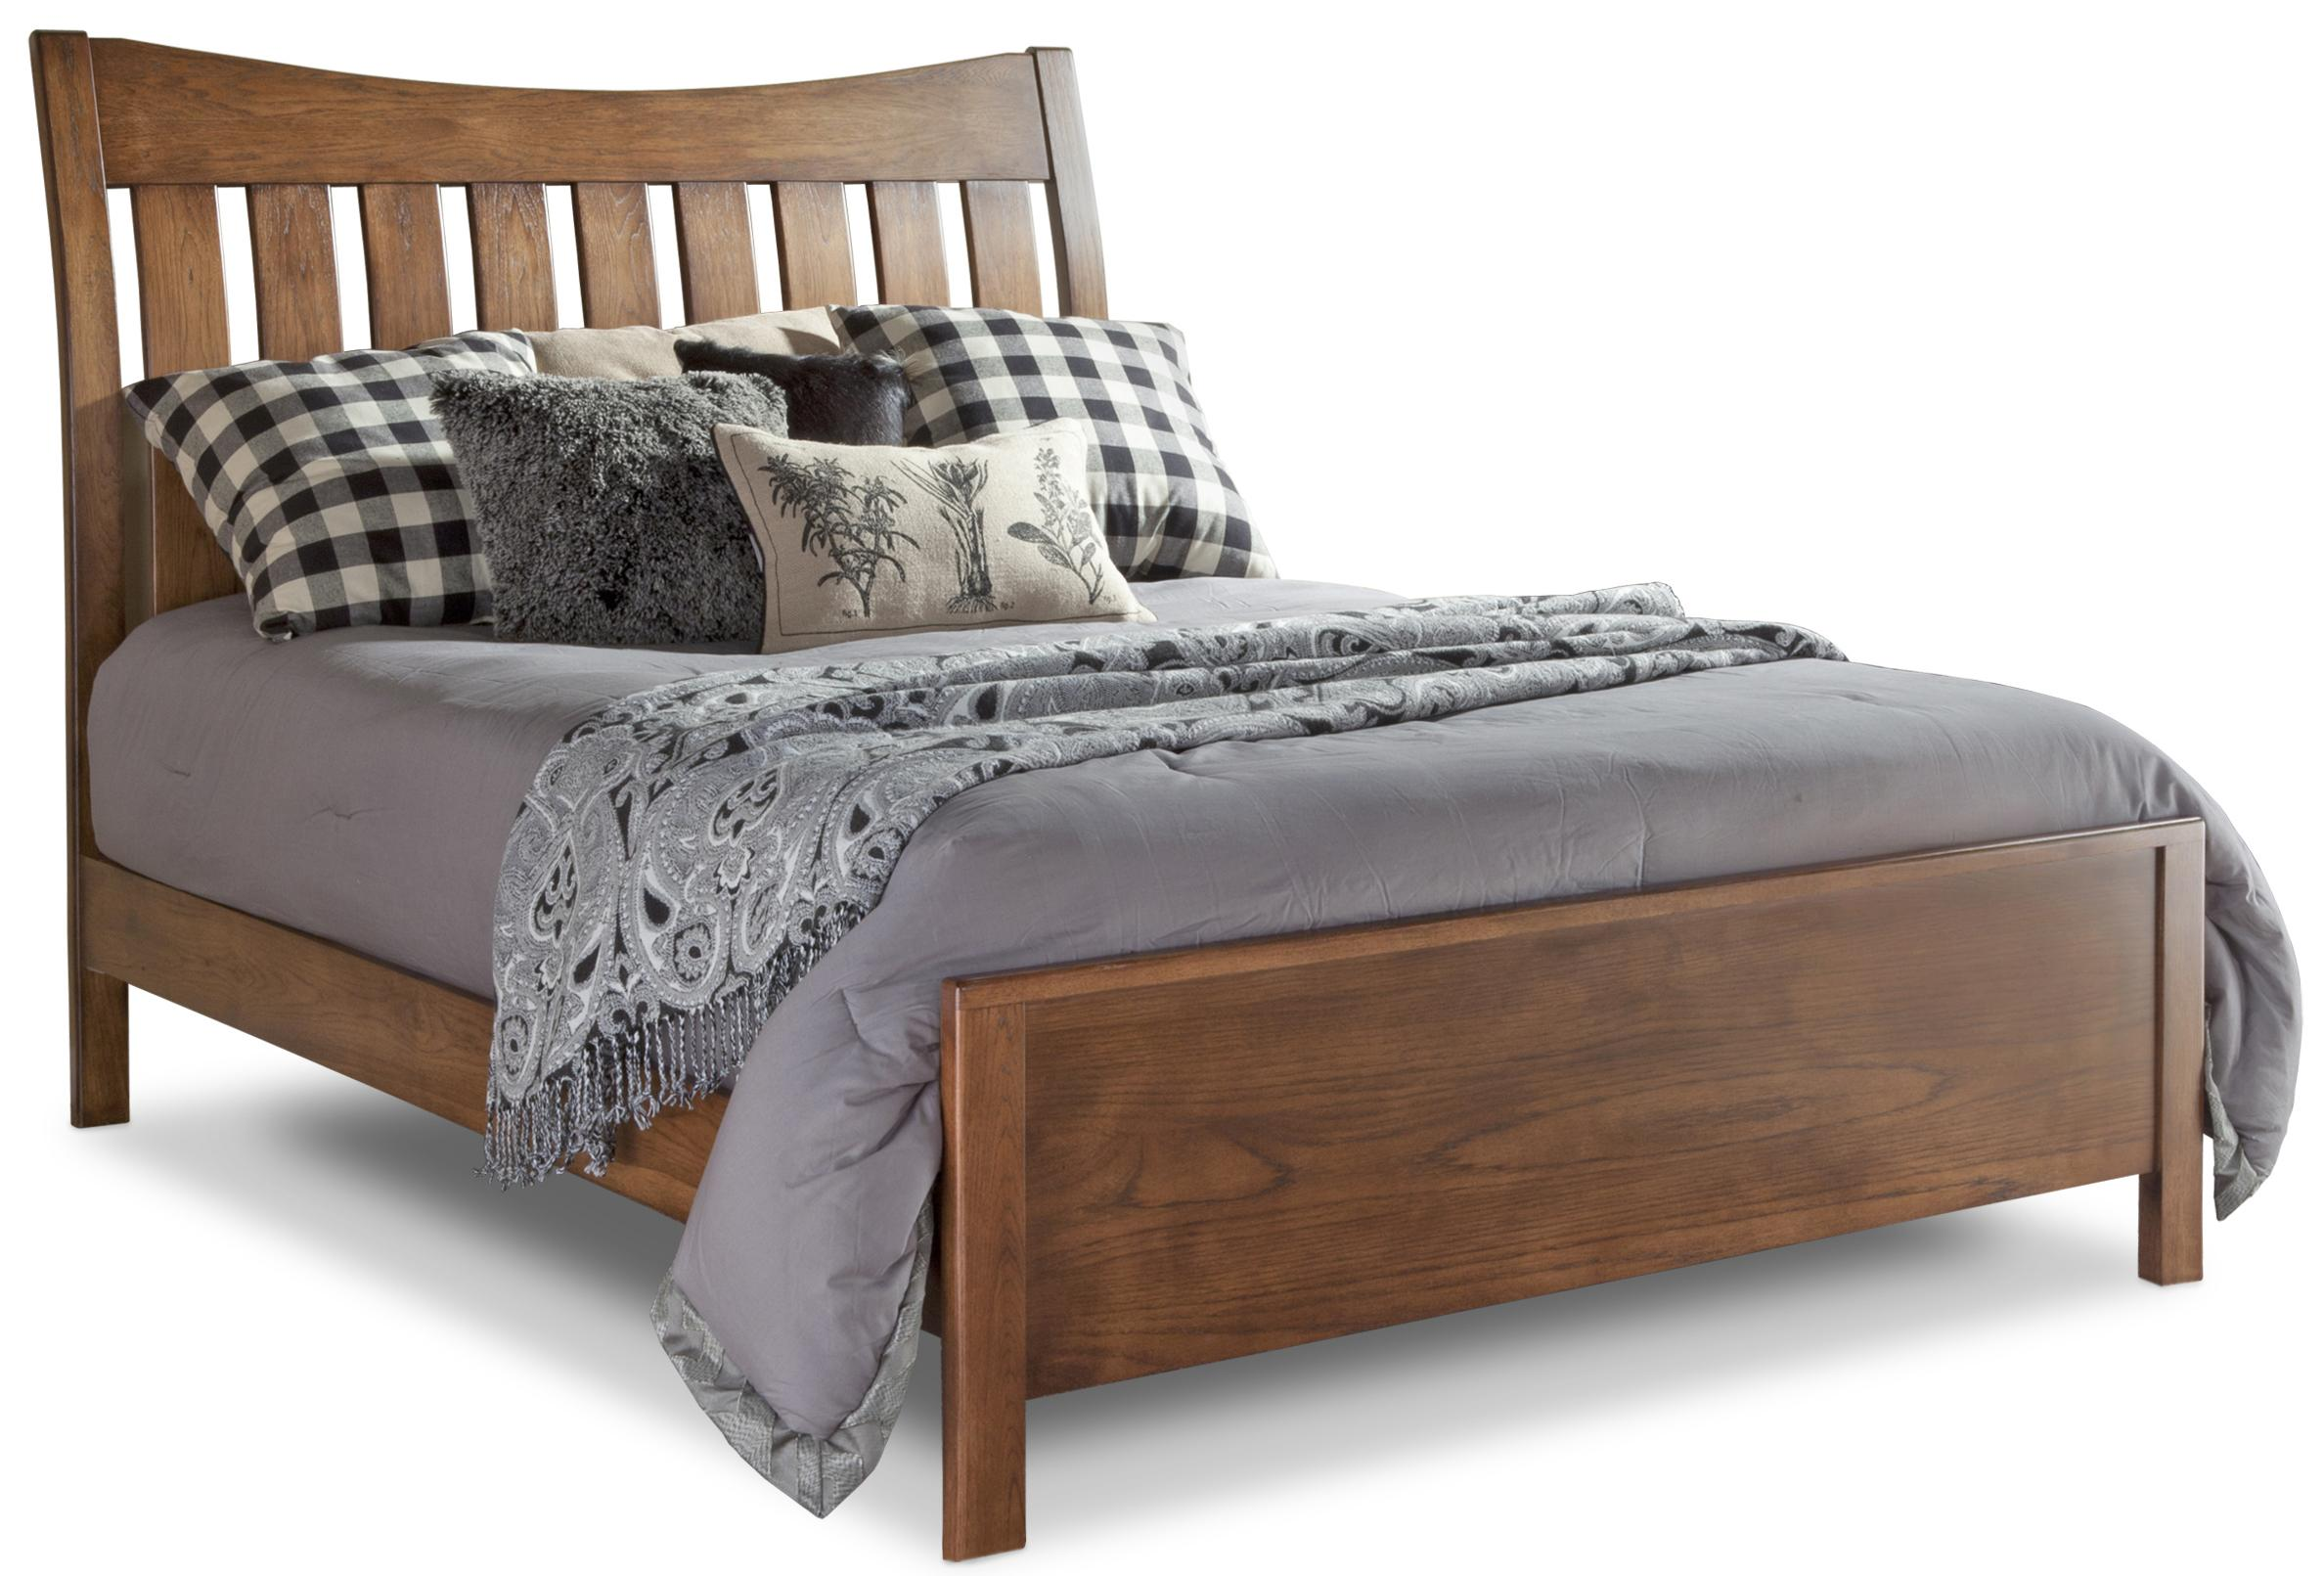 Bedfort DA Queen Bed by Daniel's Amish at Saugerties Furniture Mart